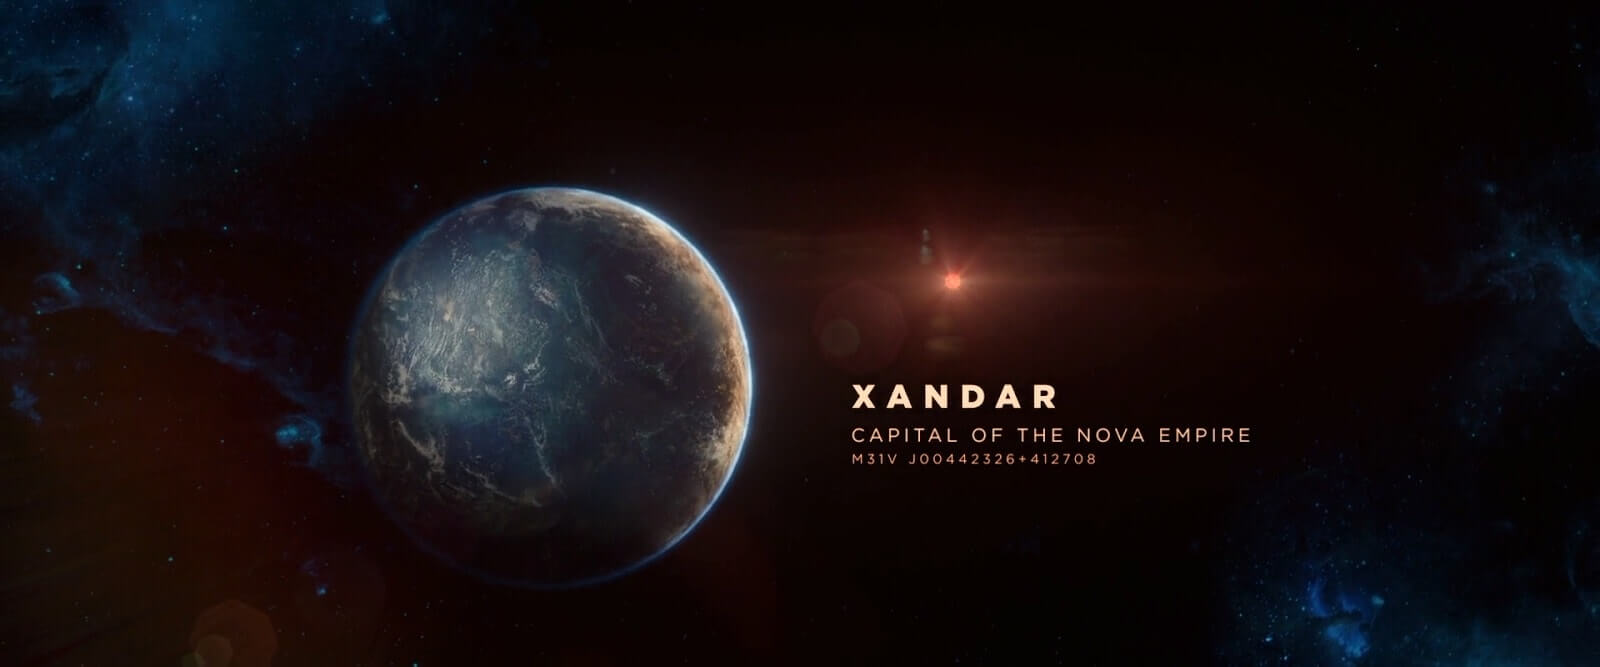 Wide Angle Shot - Camera Movements and Angles- Guardians of the Galaxy - Xandar